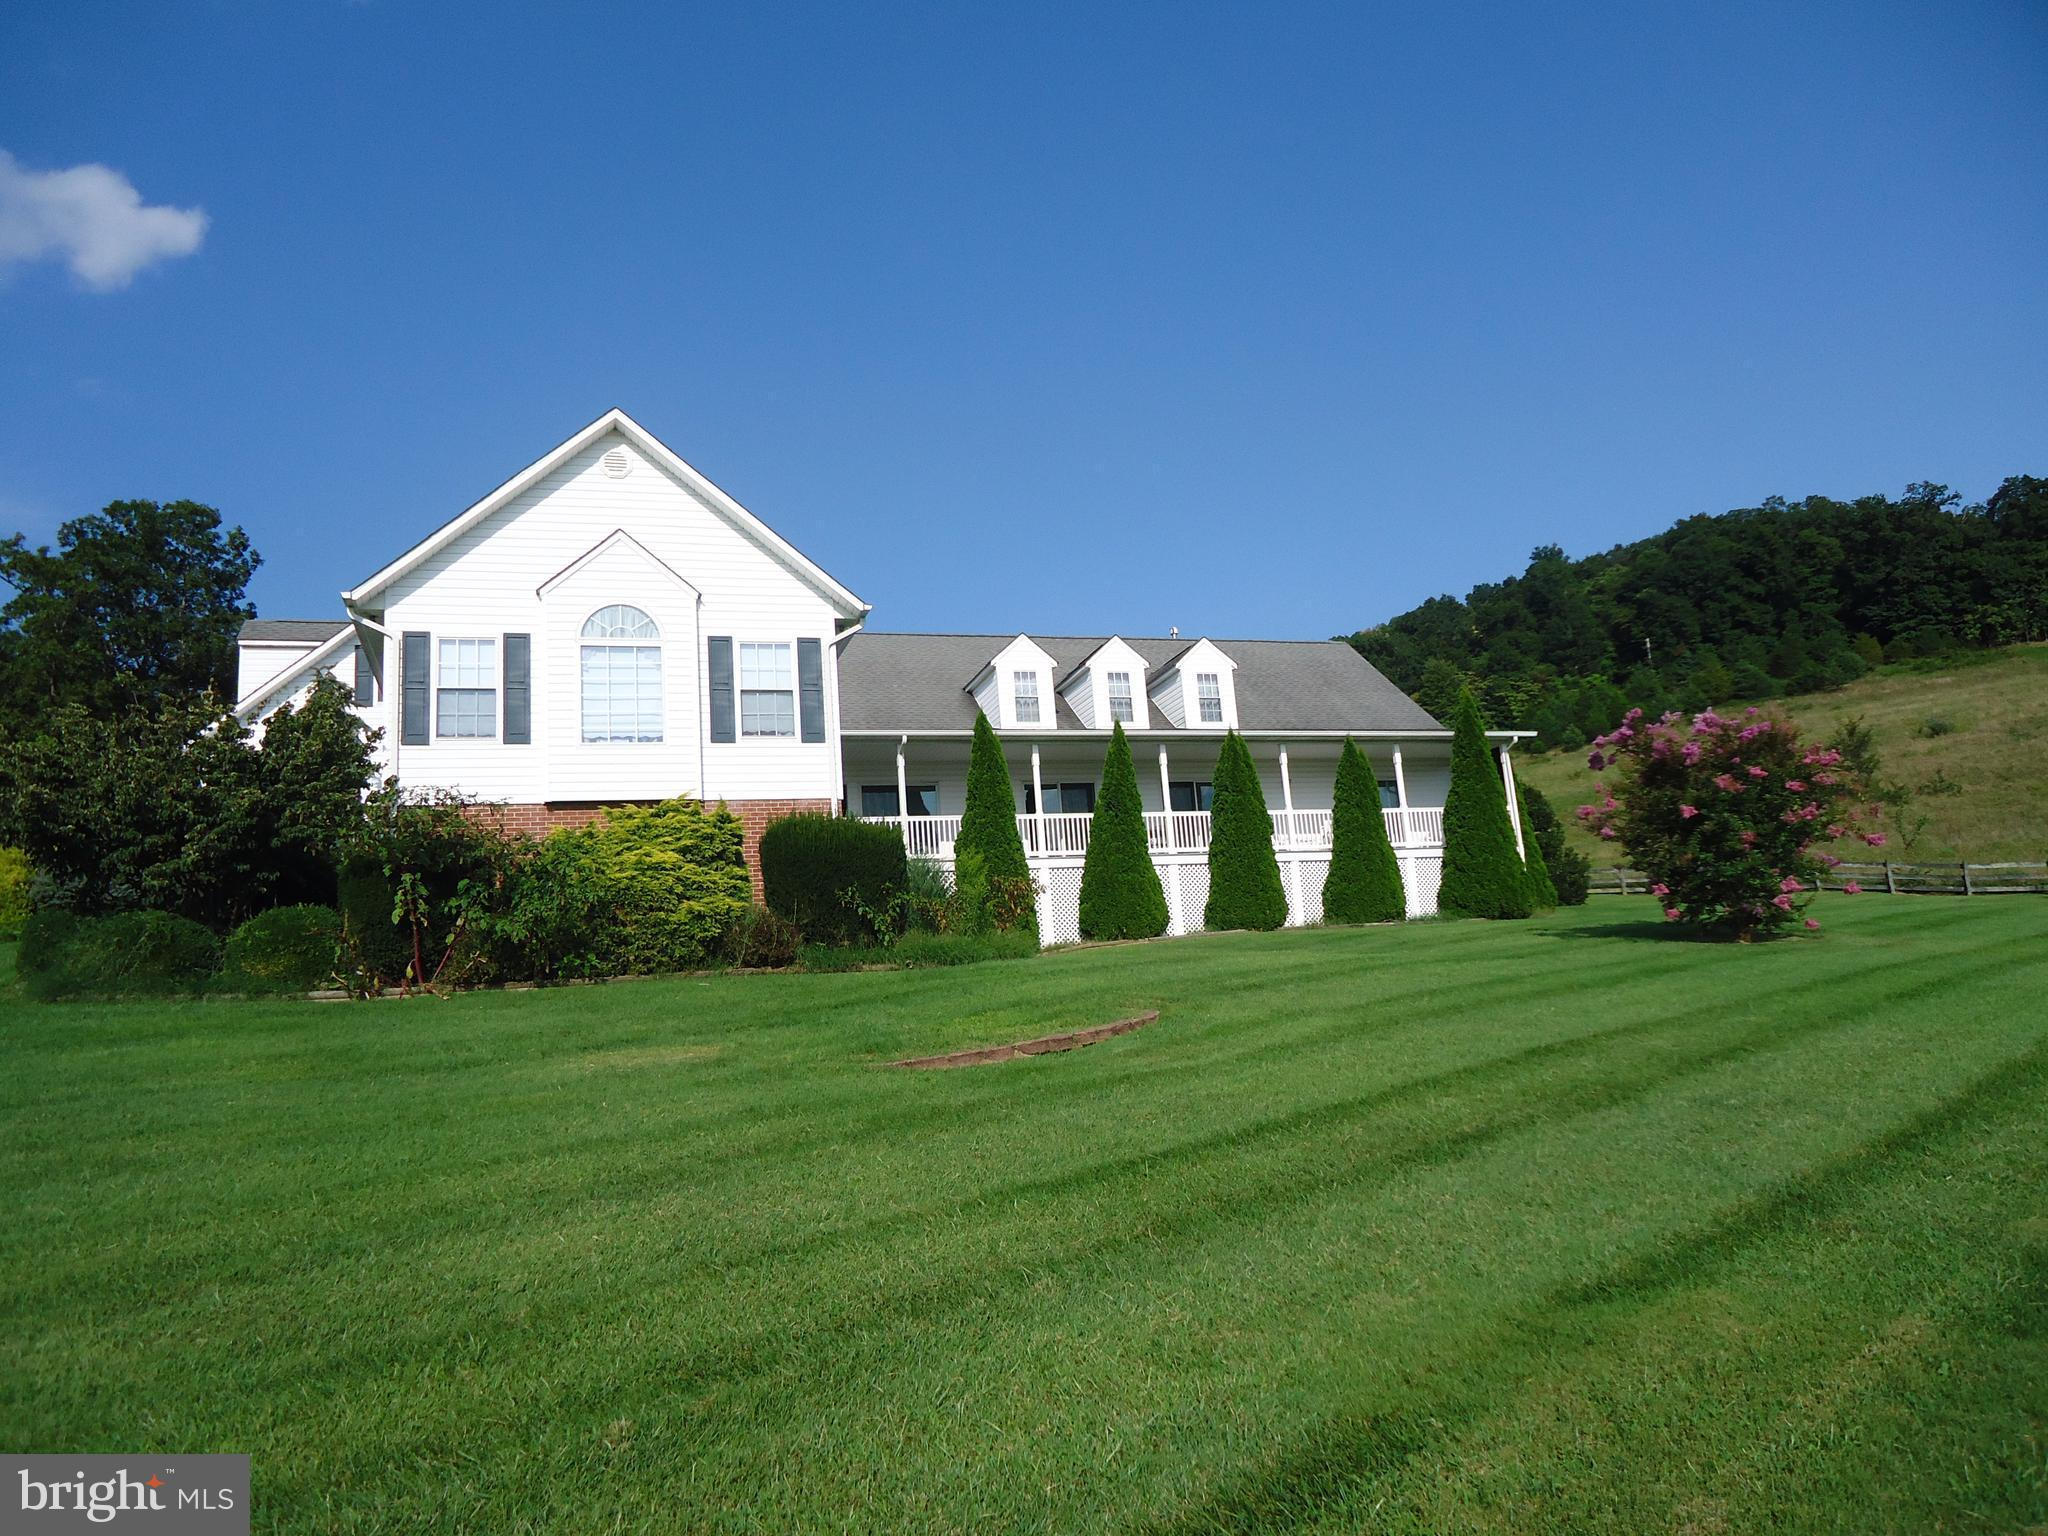 3787 FARMVIEW ROAD, STANLEY, VA 22851